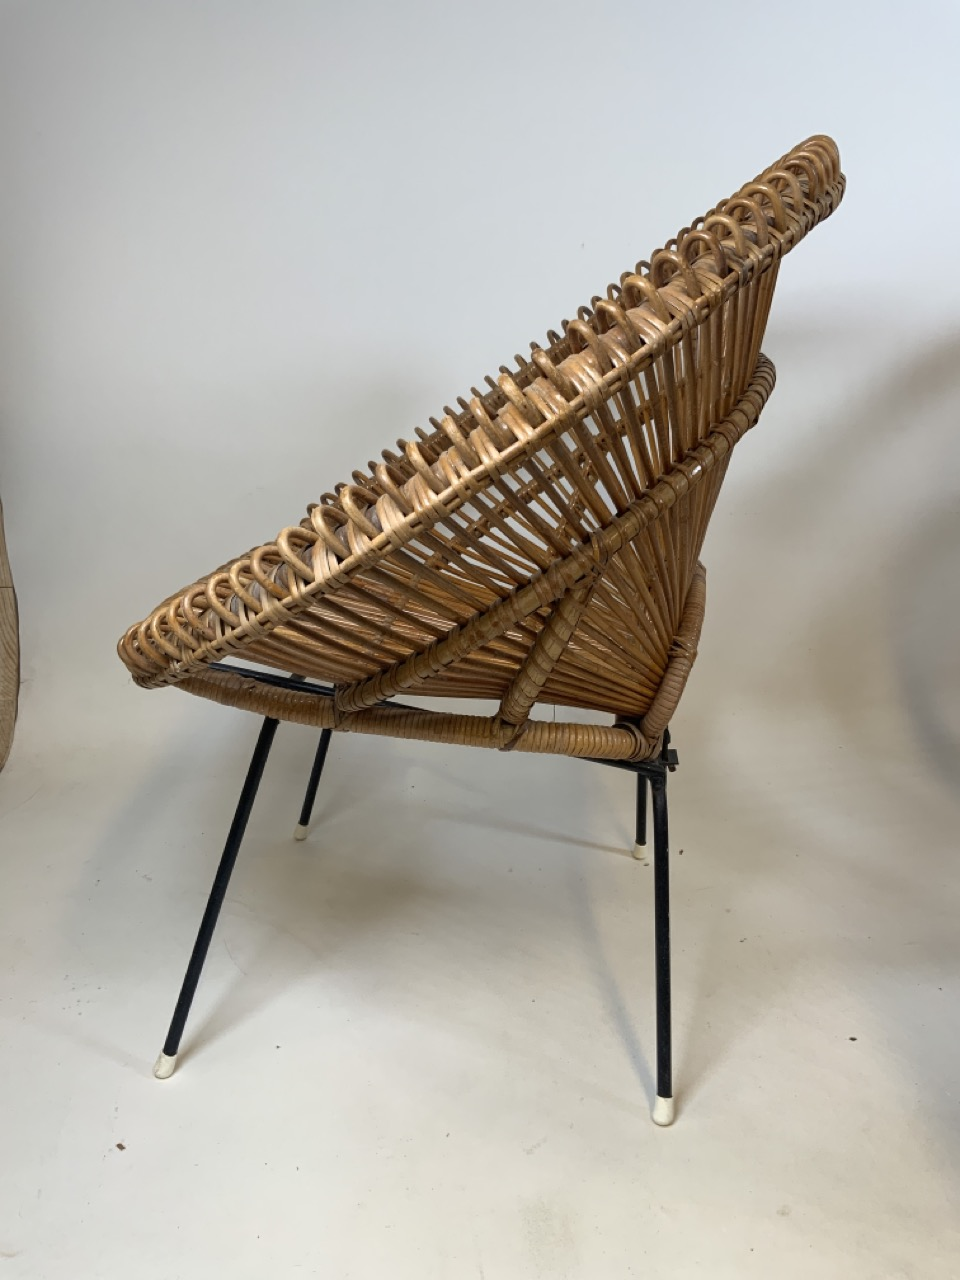 A Franco Albini mid century circular coffee table in wicker and metal with glass top and two - Image 3 of 7